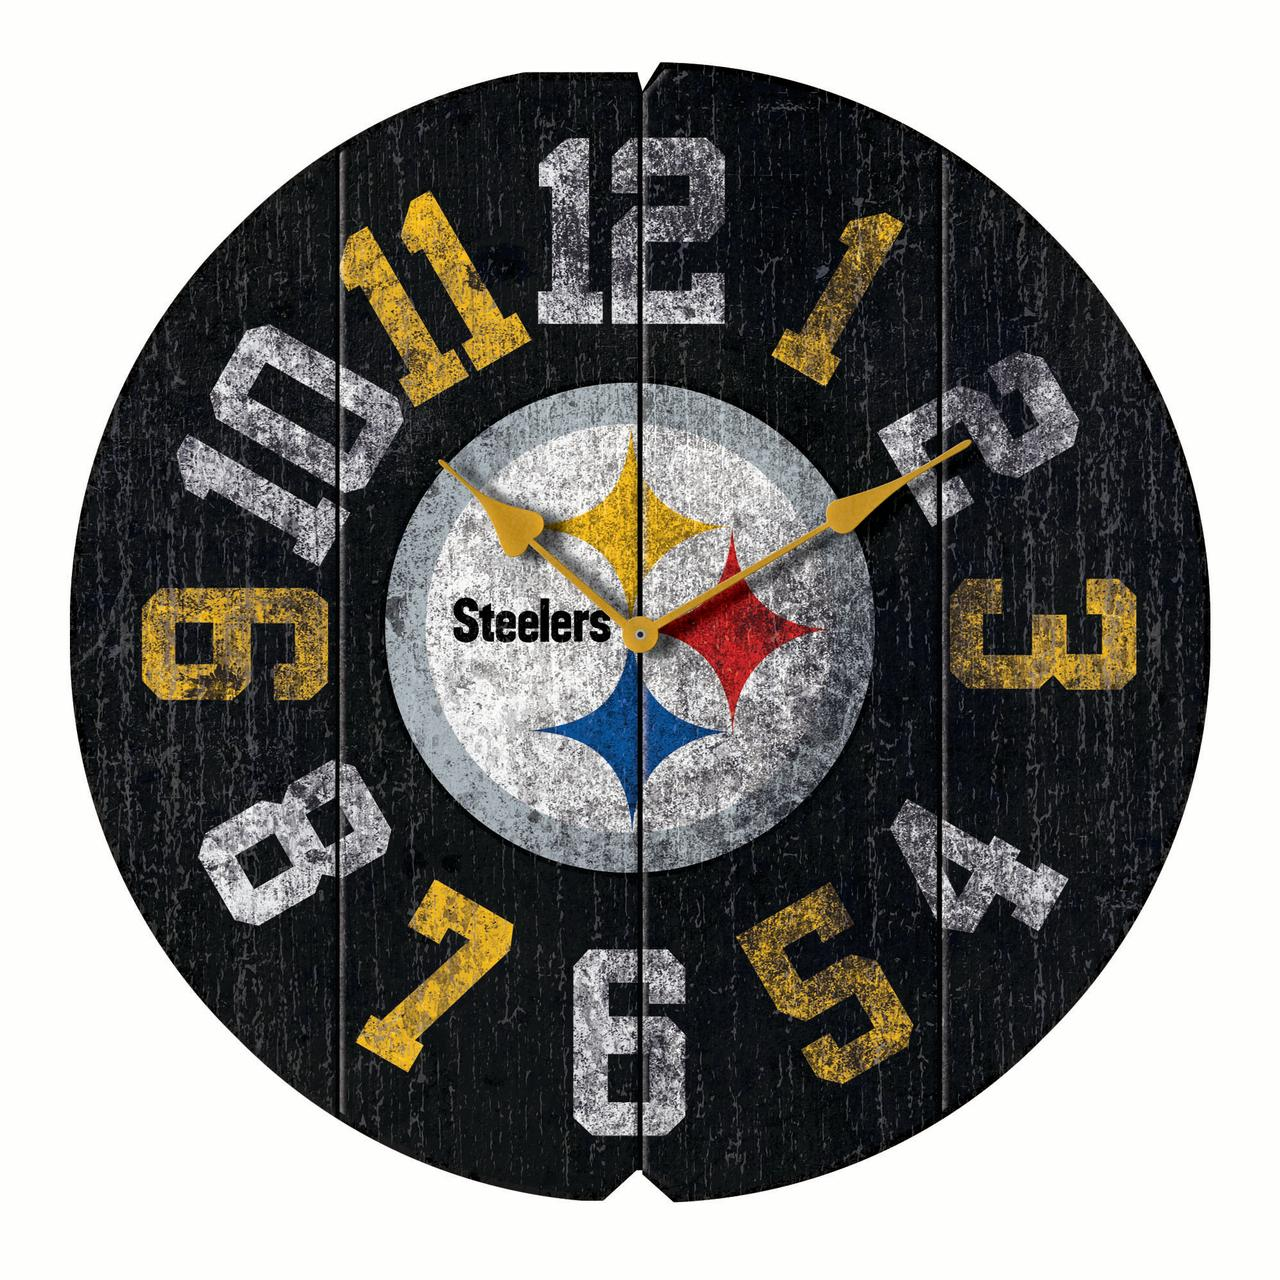 "Pittsburgh Steelers 16"" Vintage Round Wall Clock - Black - No Size"